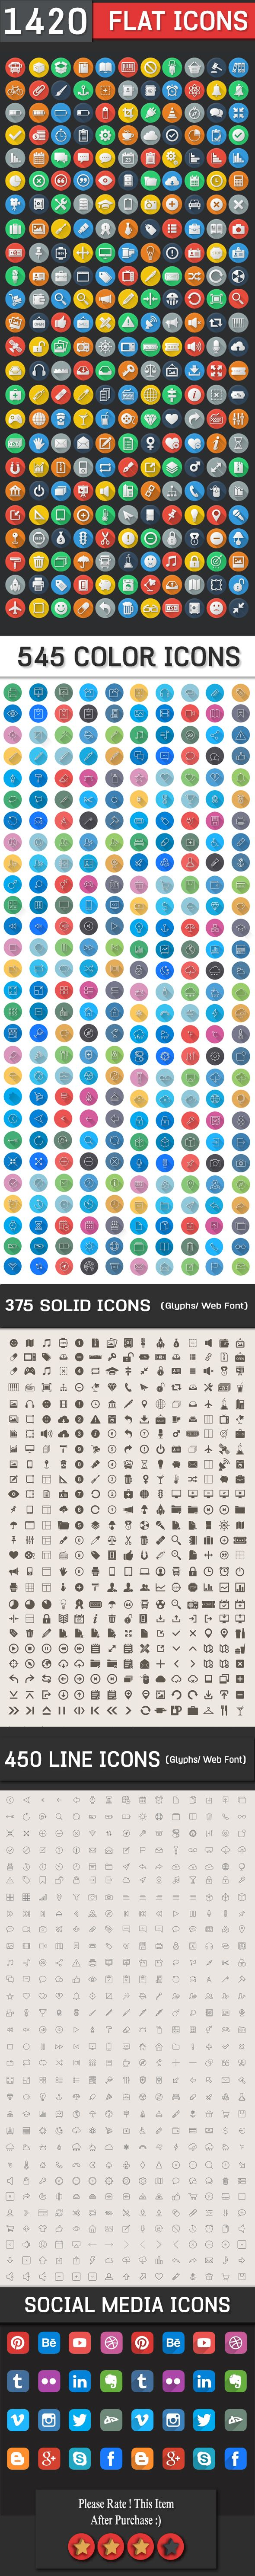 1400+ Flat Icons Bundle – Wp, ios7, Android ready Icons set for Designers and Developers from @Cursorch on @Gumroad: https://gum.co/ddm9